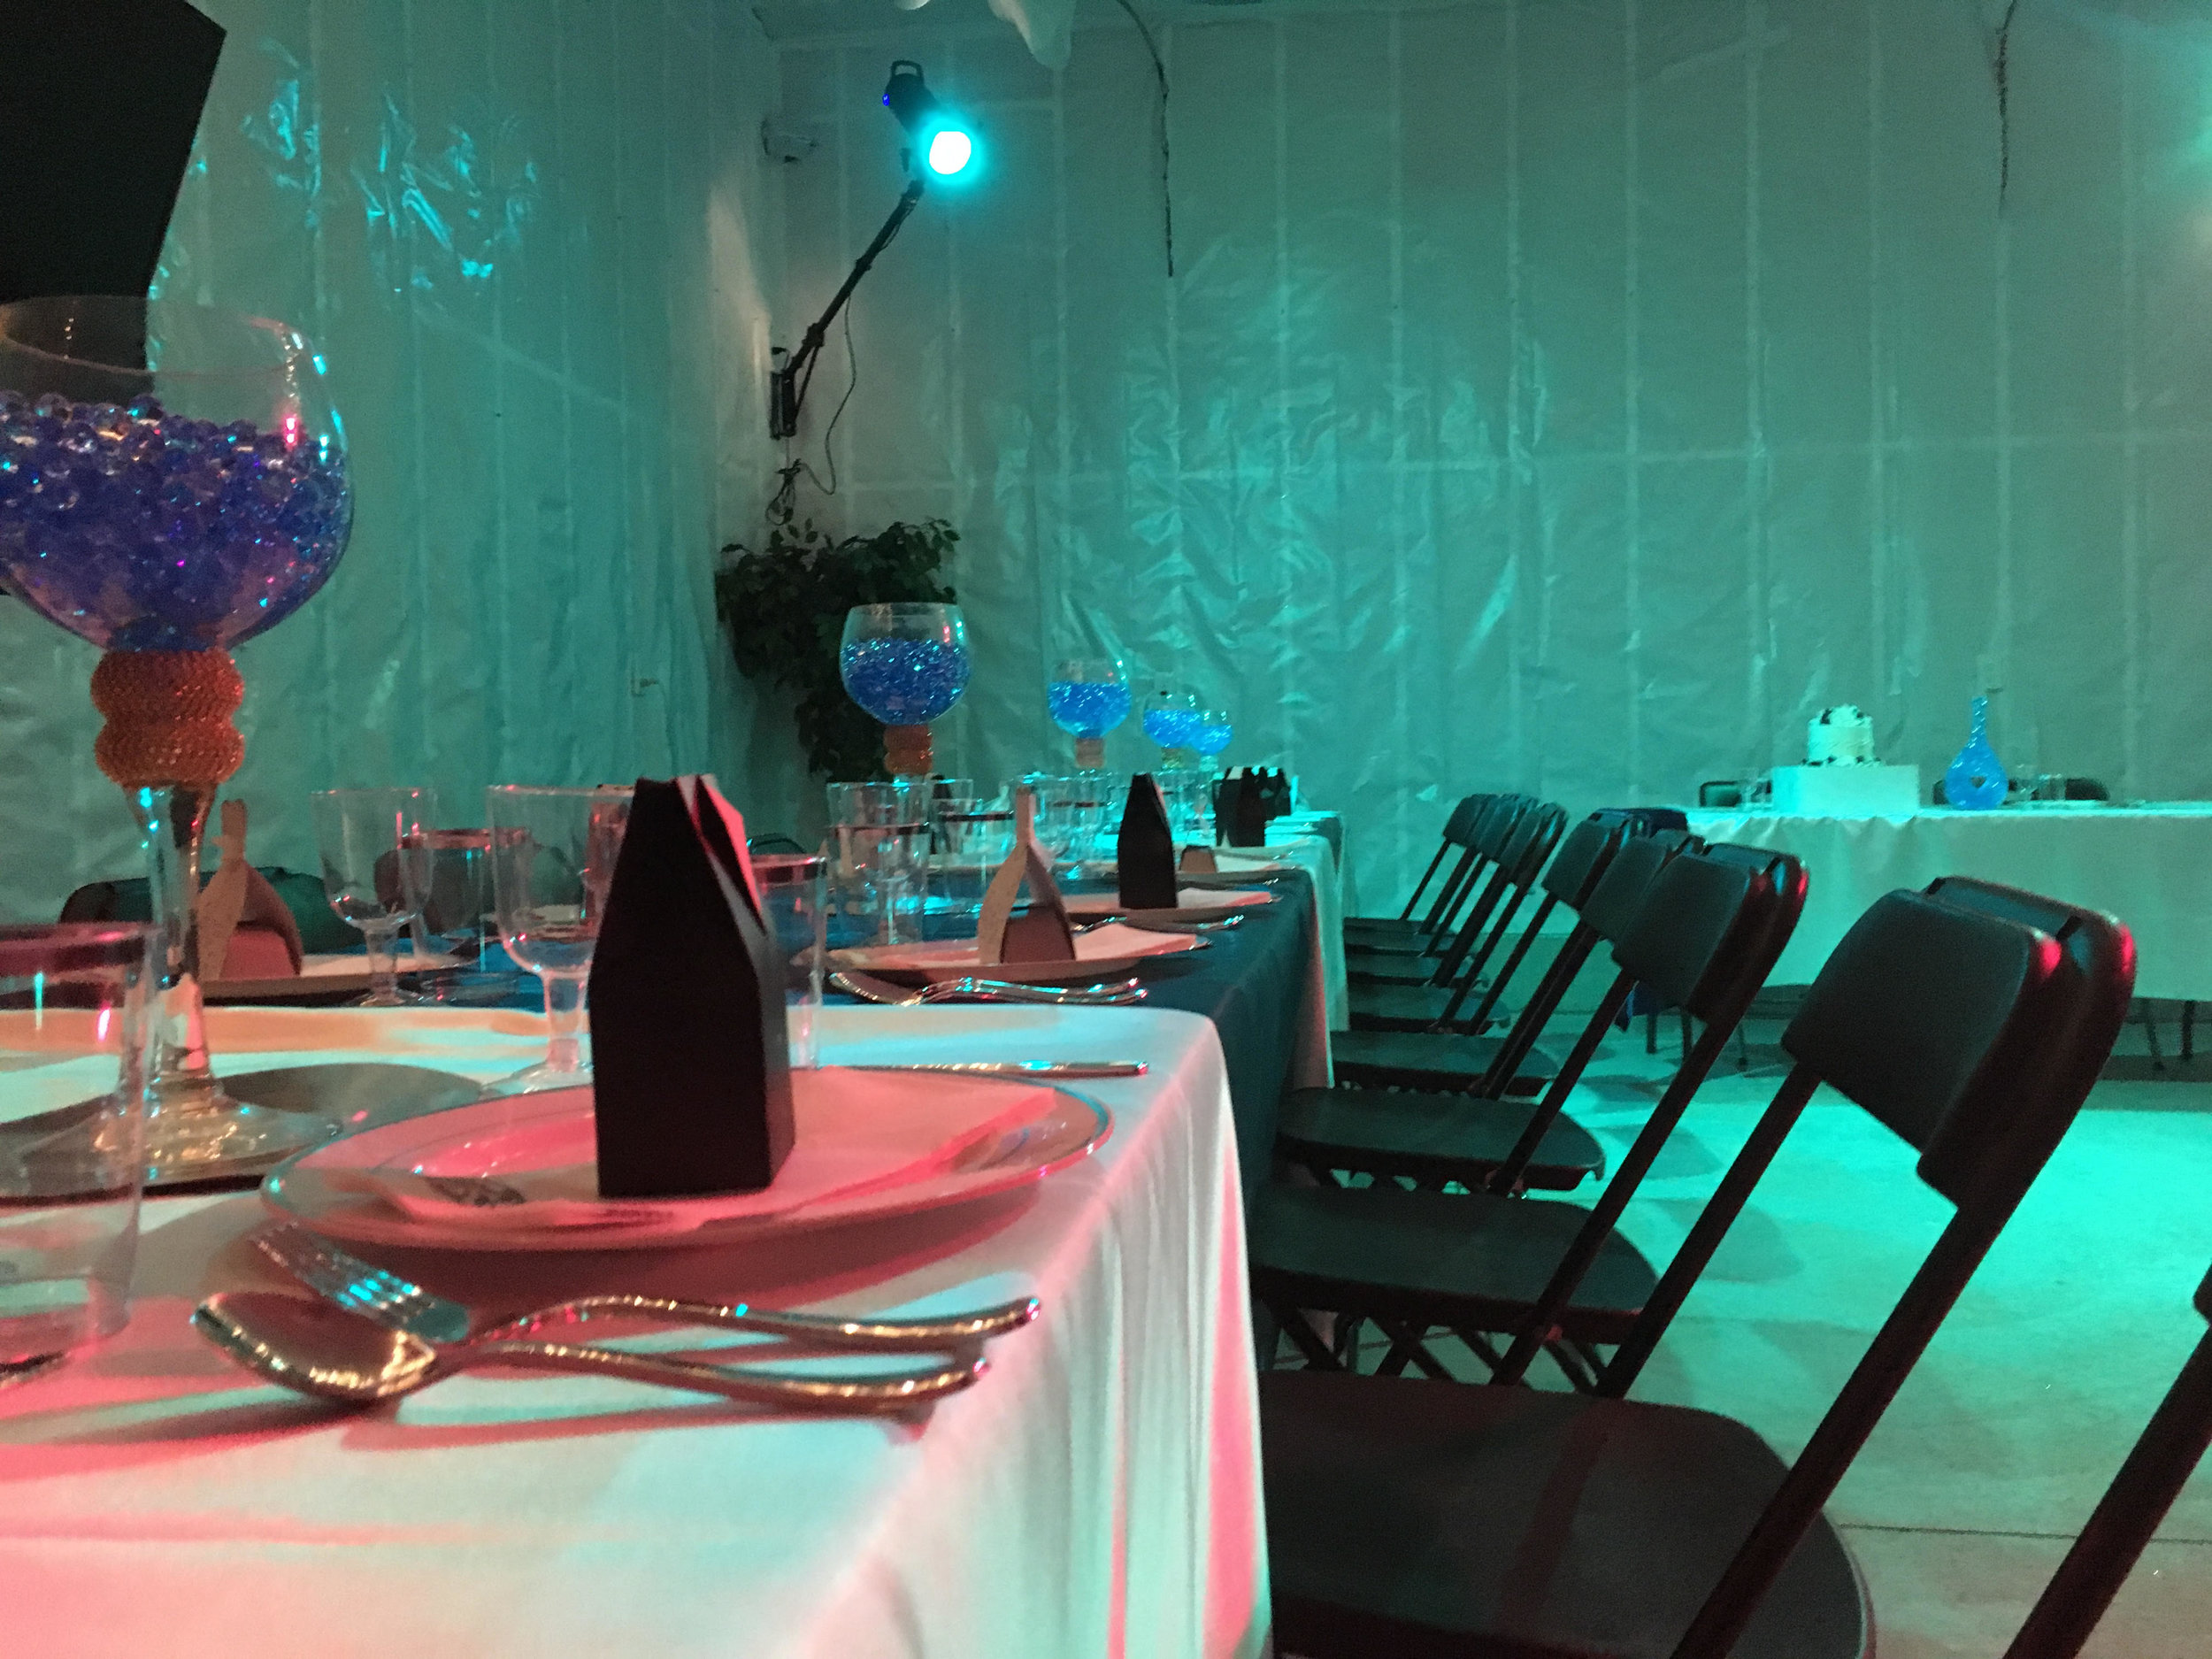 618+Meeting space at Boston Studio Rental-Parties Events -Affordable photo and video studio rental .jpg